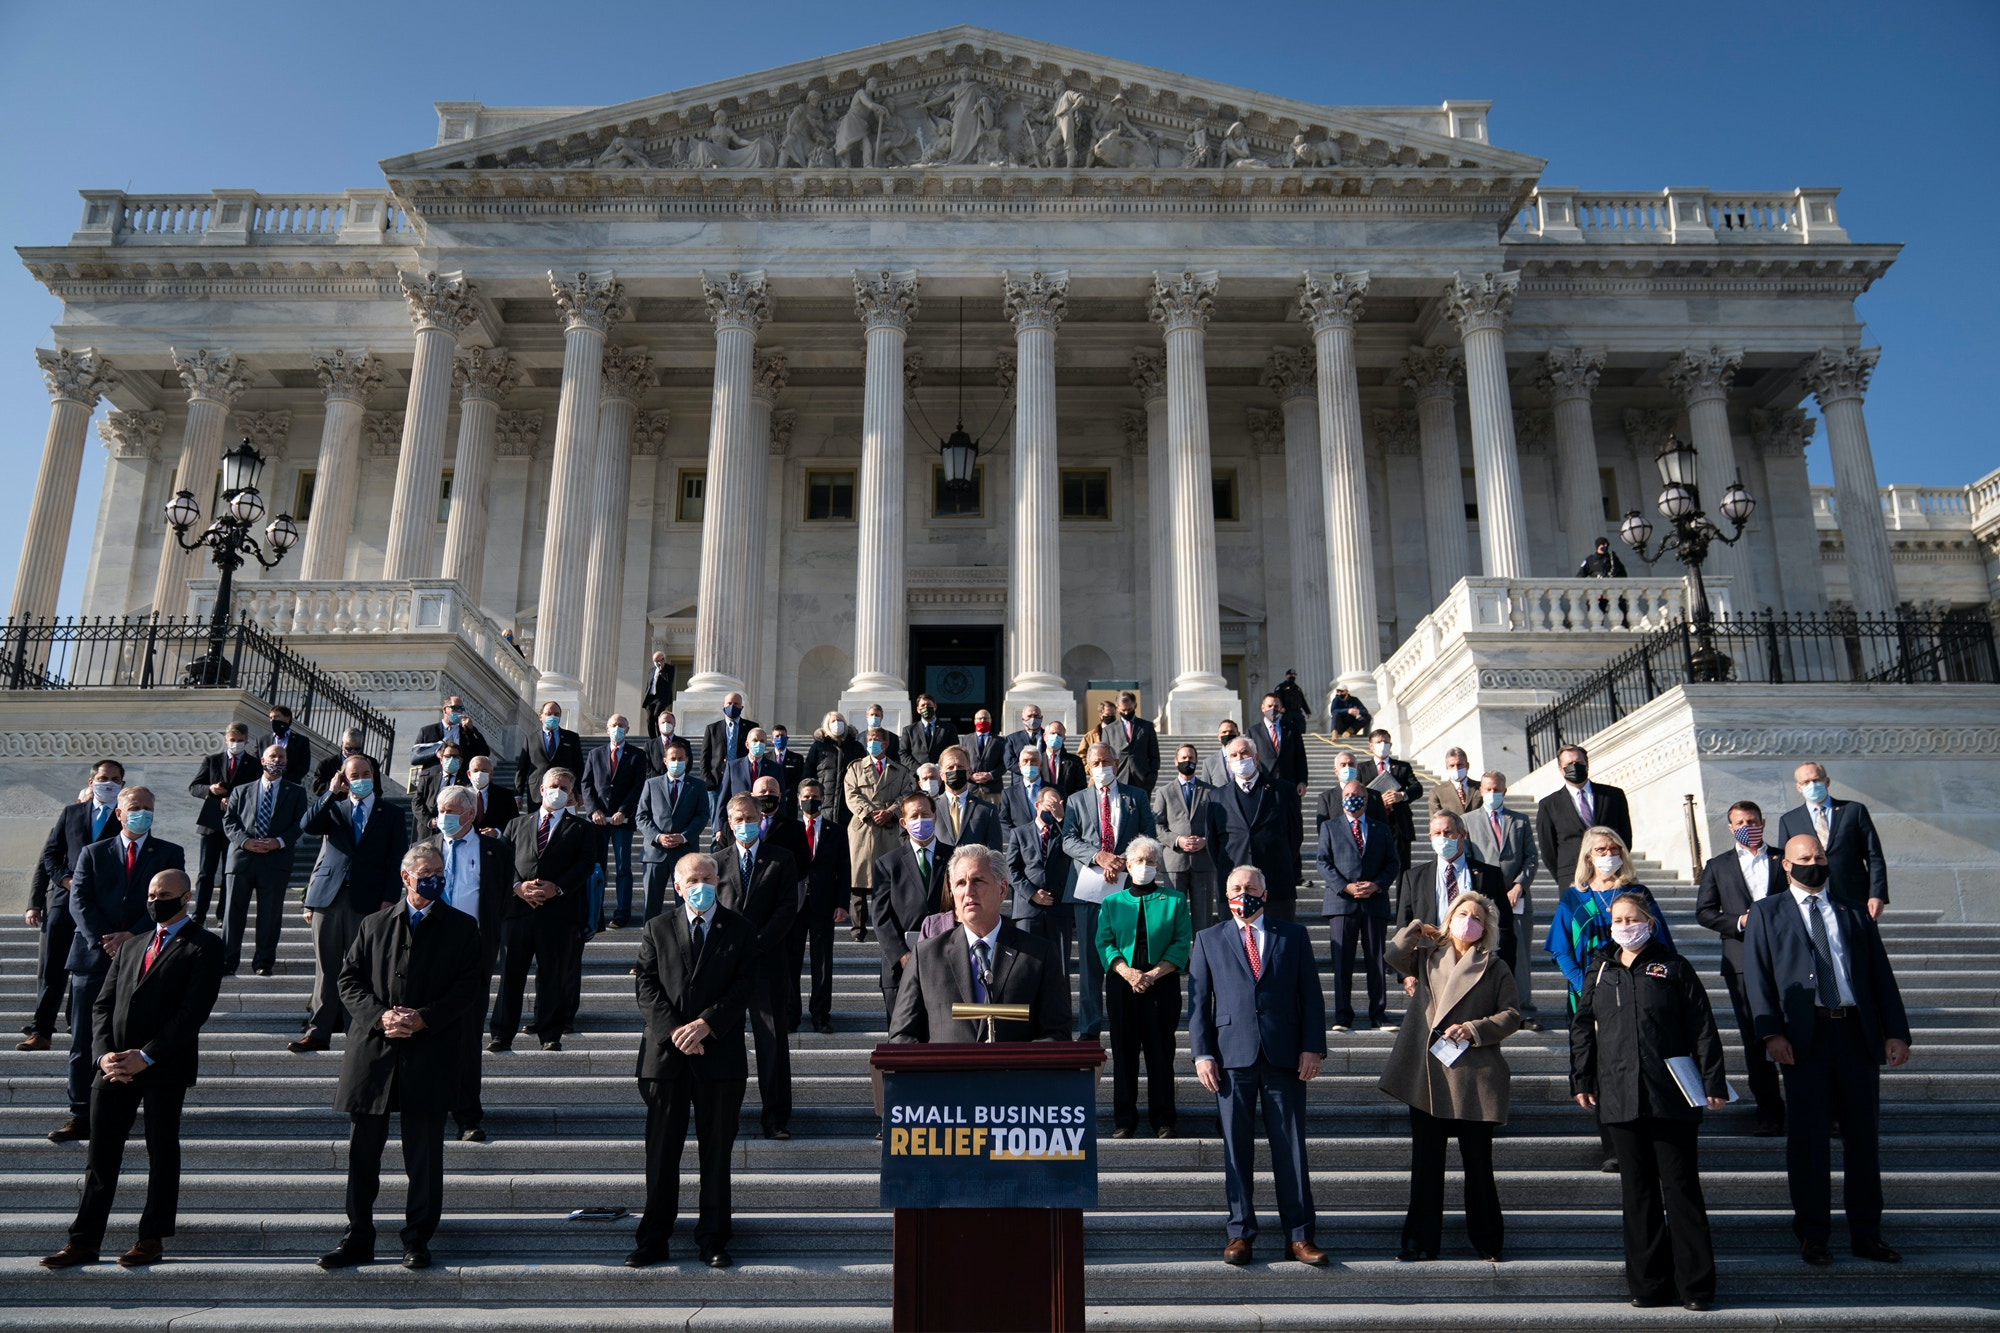 House Minority Leader Kevin McCarthy (R-CA), surrounded fellow House Republicans, speaks during a news conference outside the U.S. Capitol December 10, 2020 in Washington, DC.